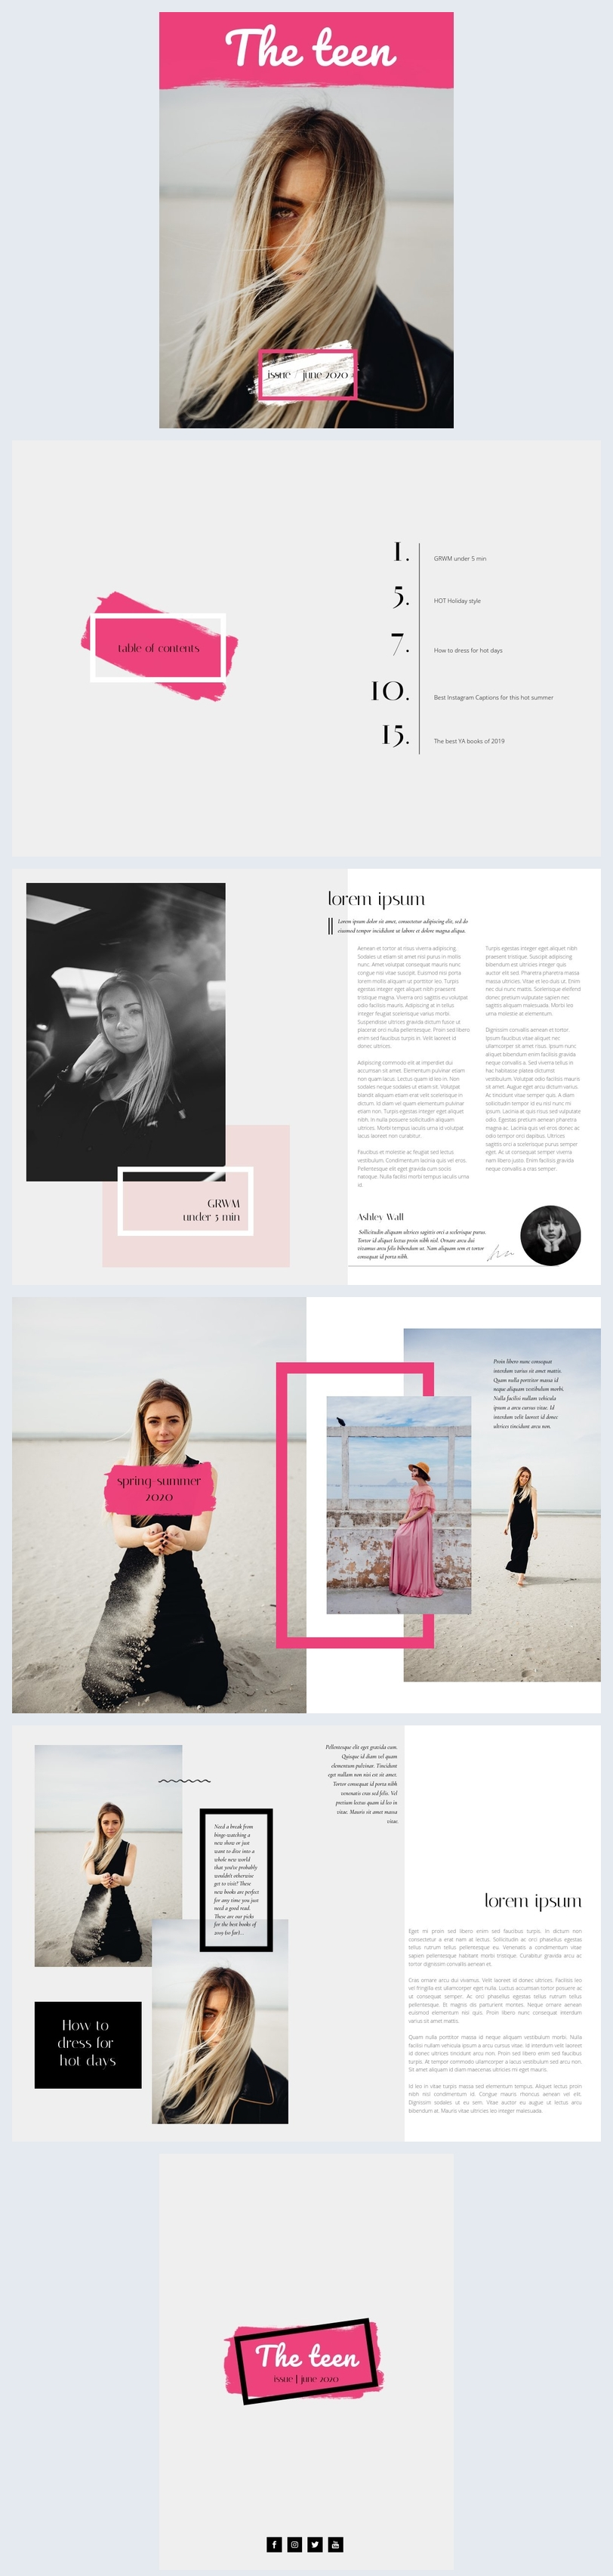 Teenagermagazin Design